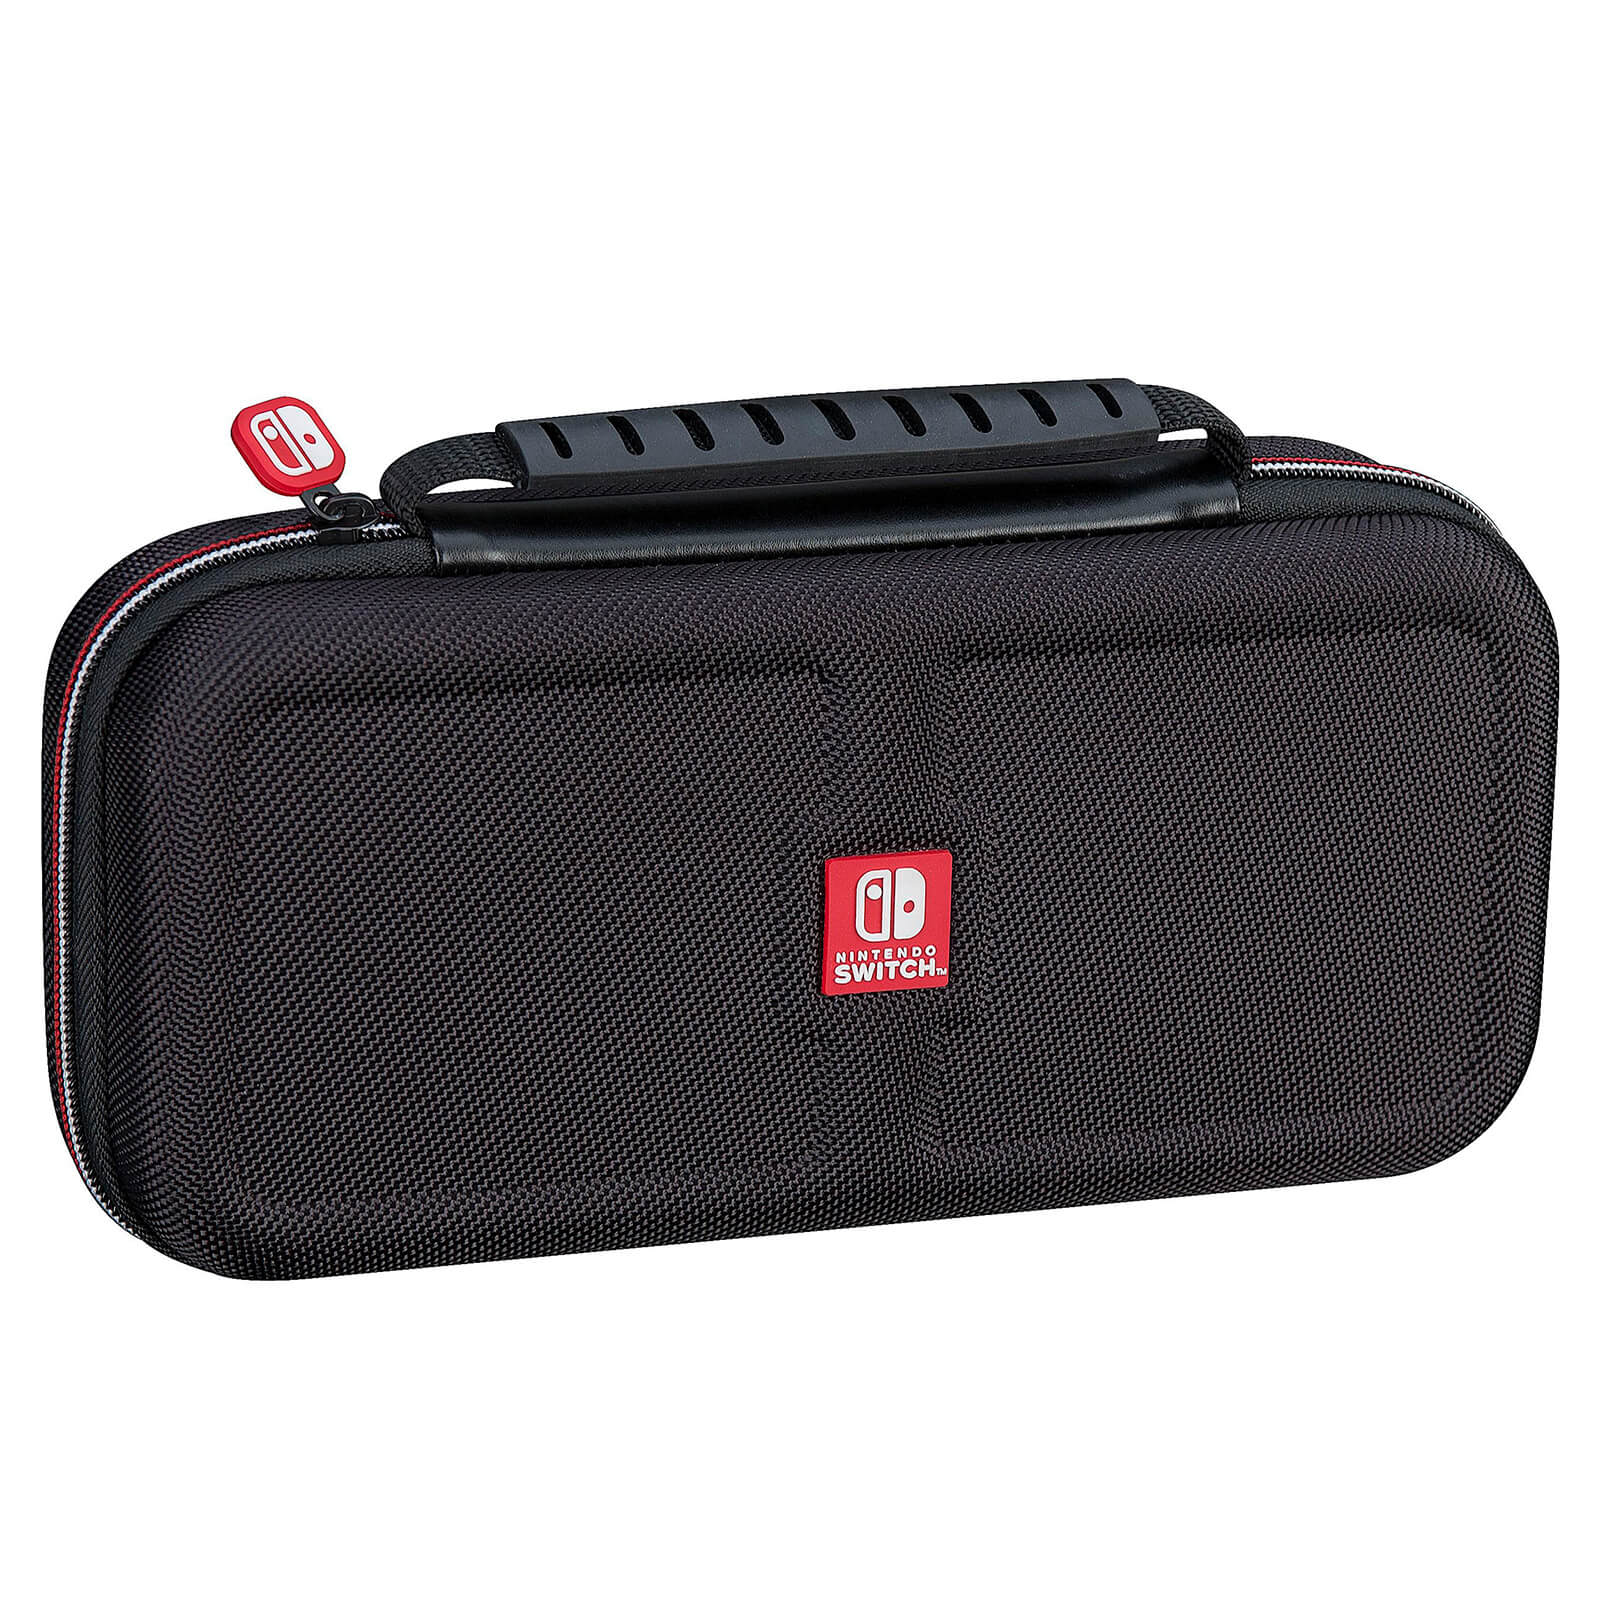 Nintendo Switch Deluxe Travel Case (fekete)